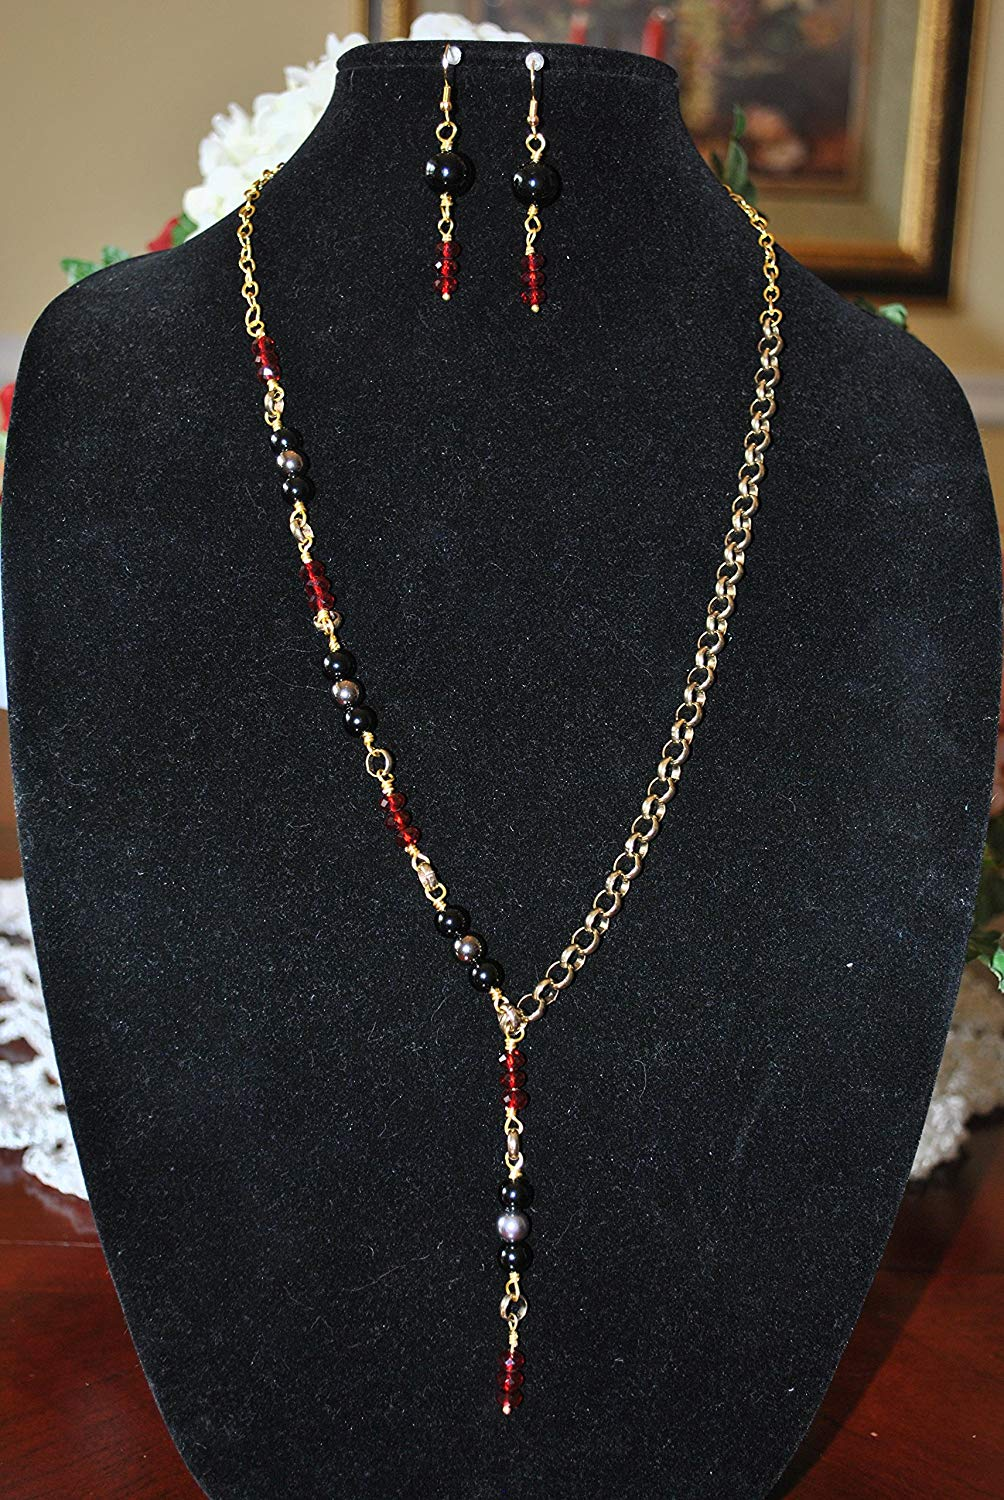 """Beautiful gold-tone necklace with black and red beads with matching earrings. Necklace measures 13 1/2"""" Earrings measure 1 1/2"""""""